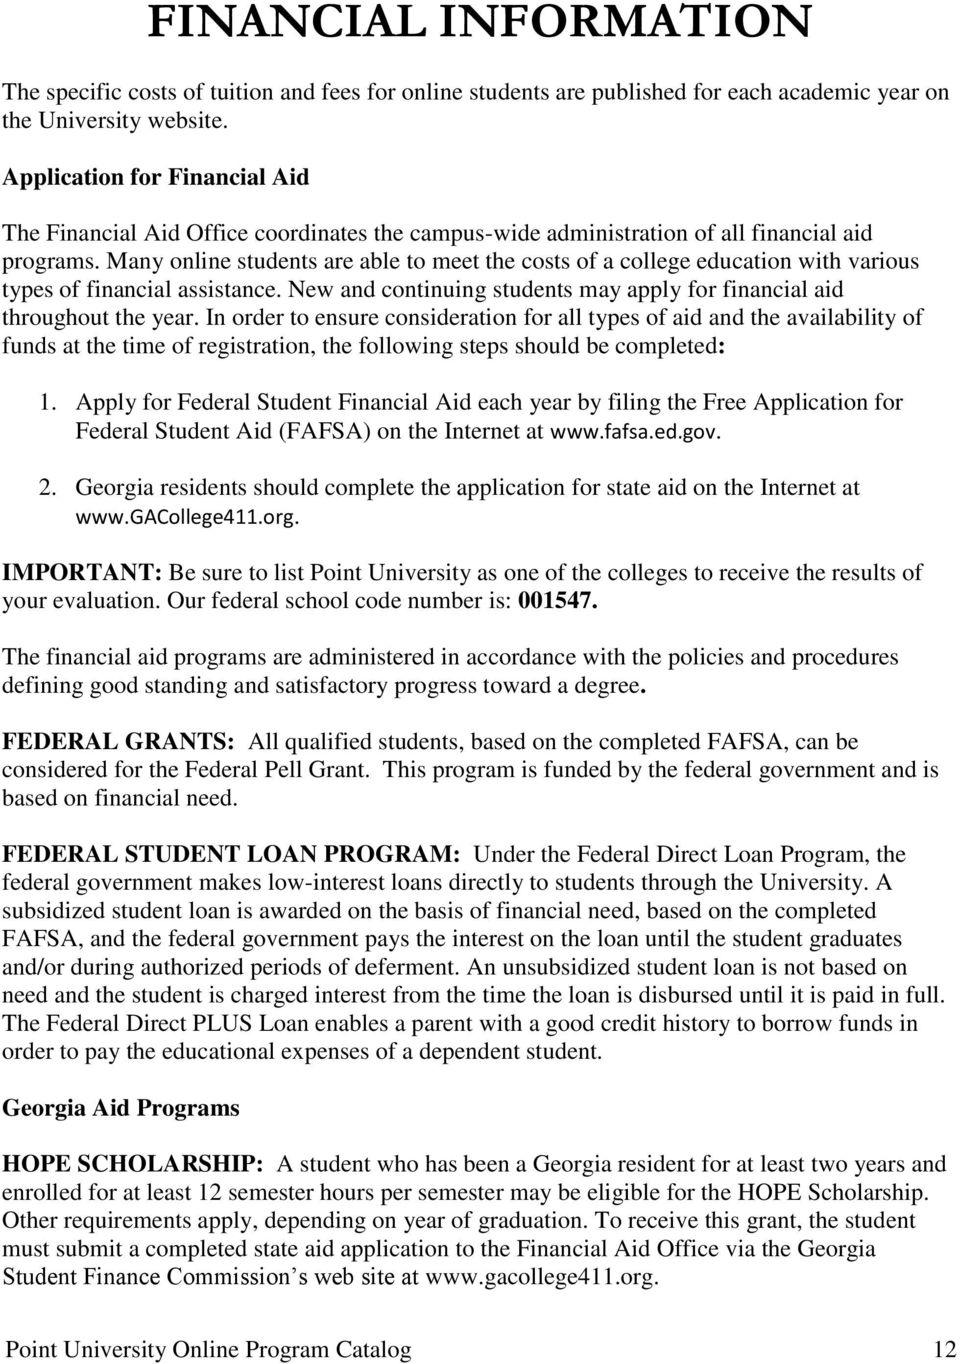 Many online students are able to meet the costs of a college education with various types of financial assistance. New and continuing students may apply for financial aid throughout the year.